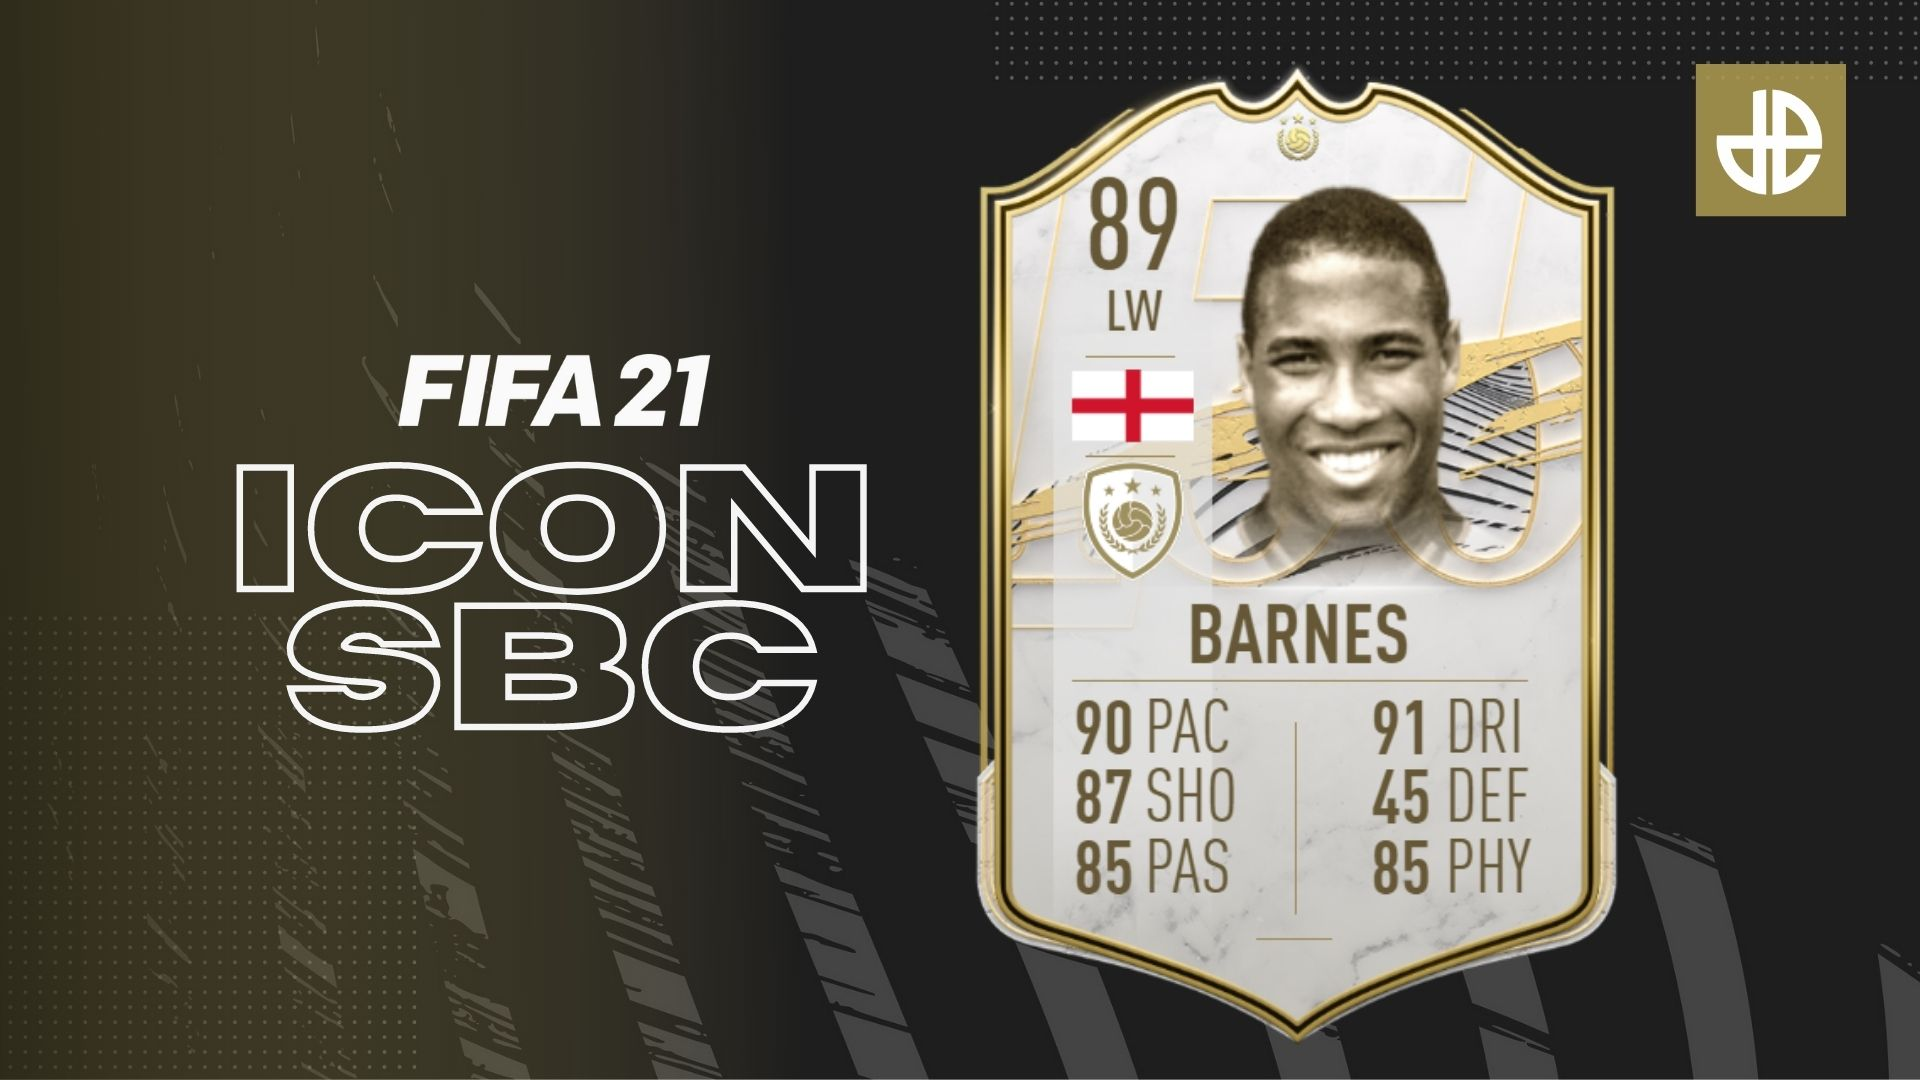 John Barnes 89-rated ICON SBC FIFA 21 Ultimate Team requirements cost.